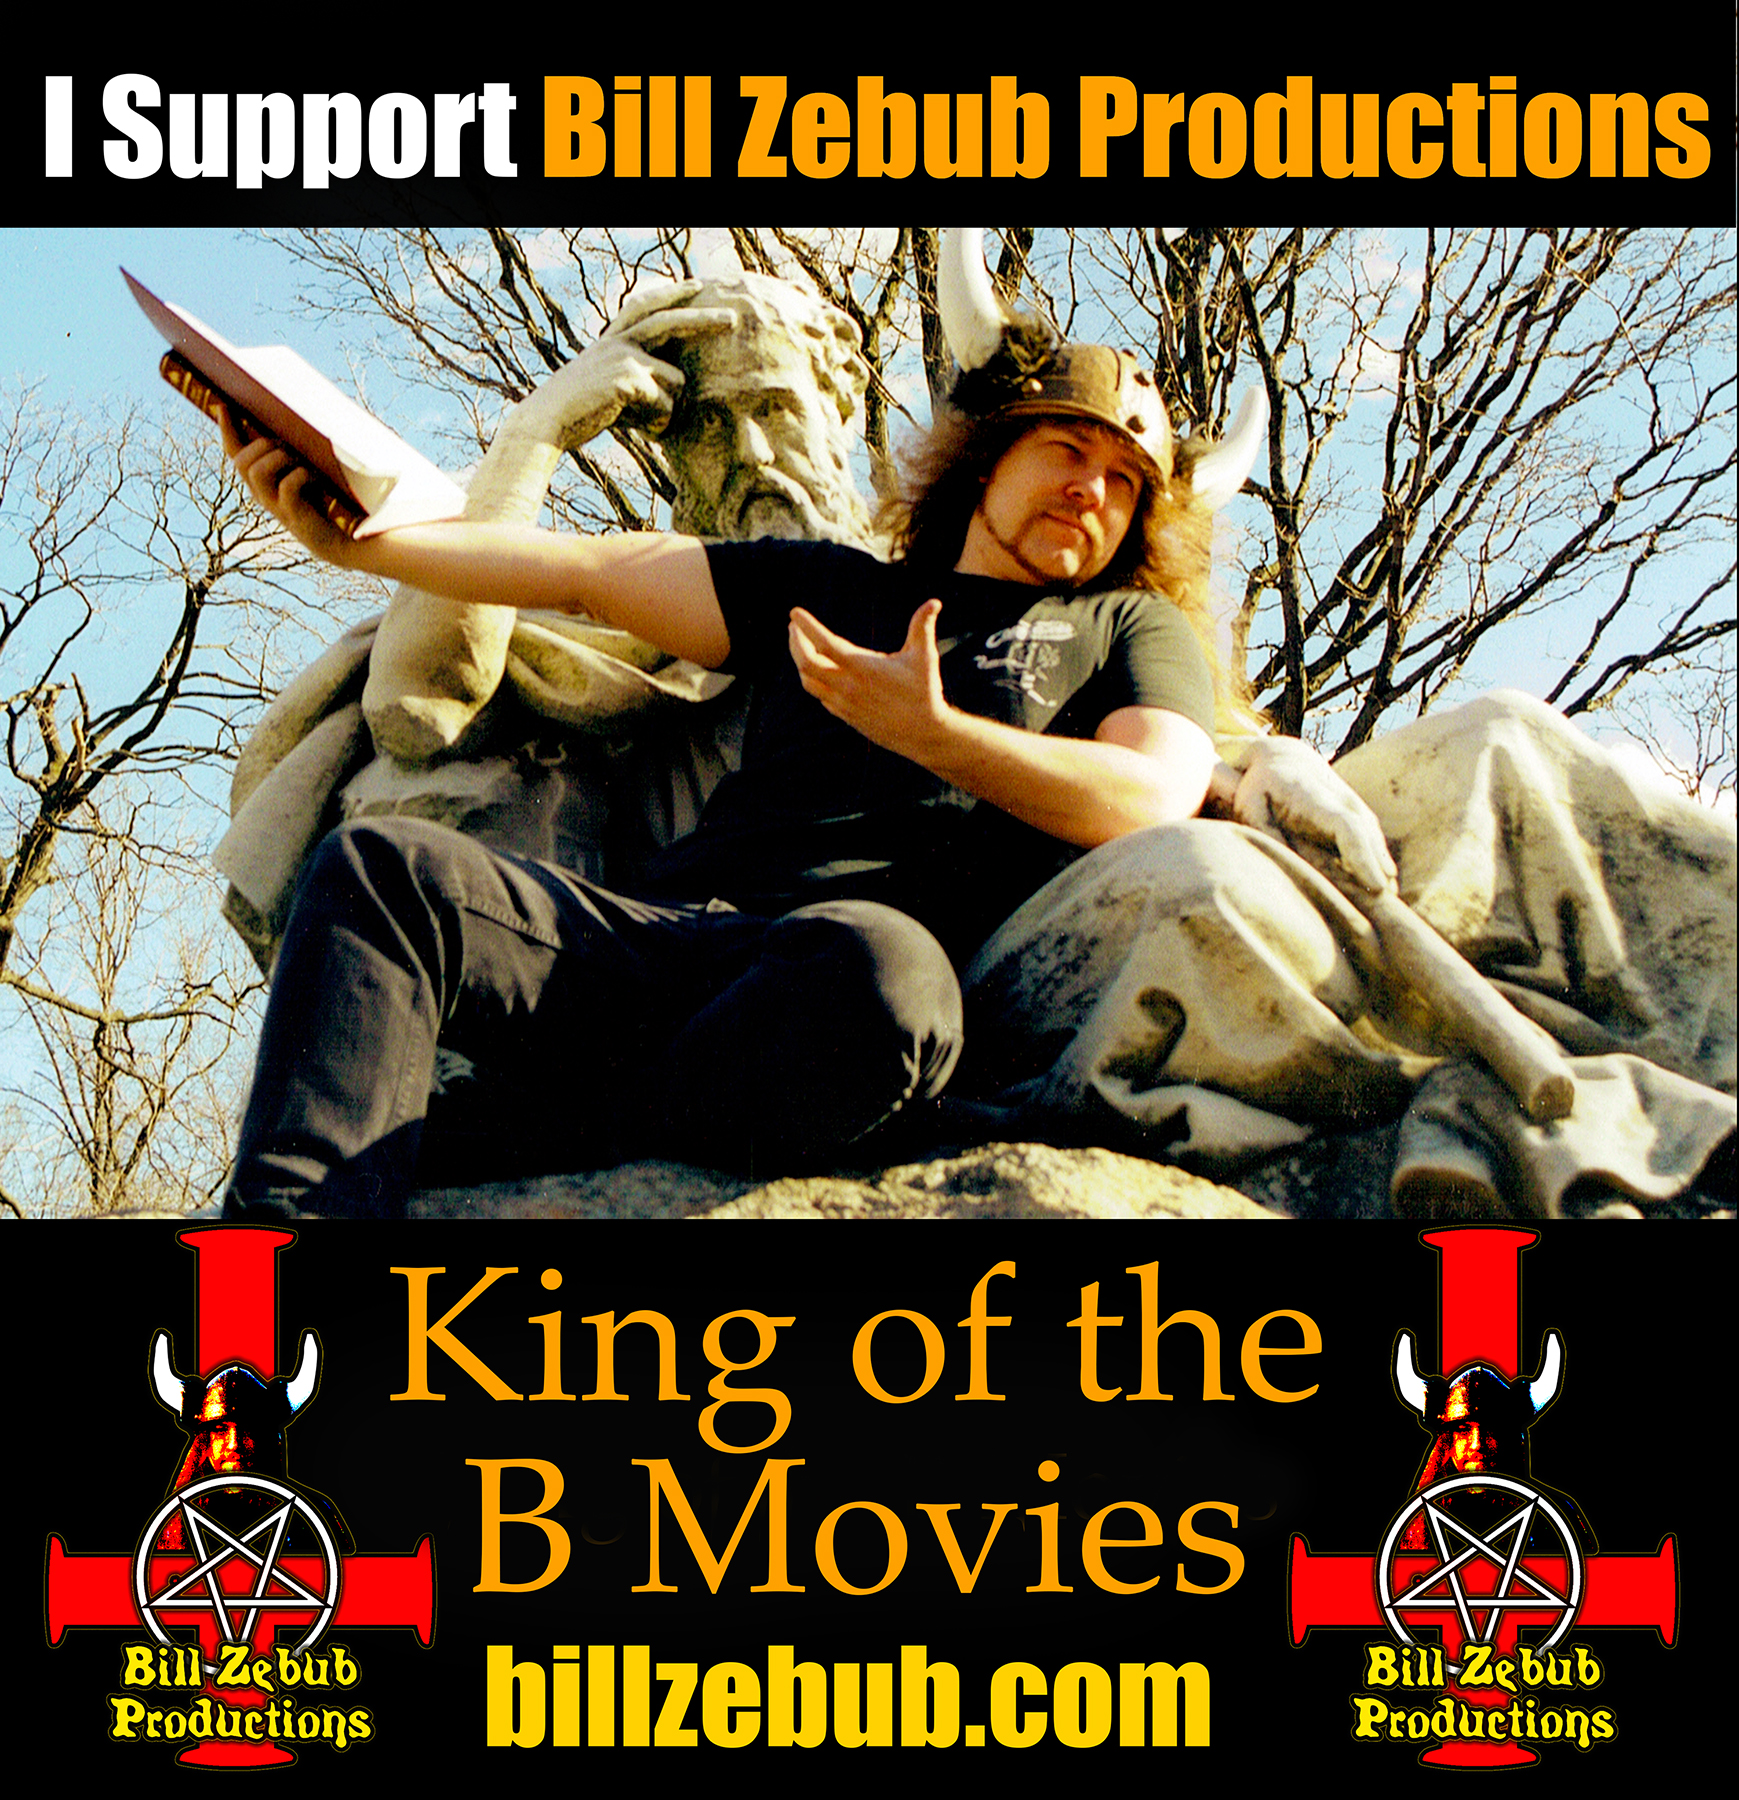 Support Bill Zebub Productions